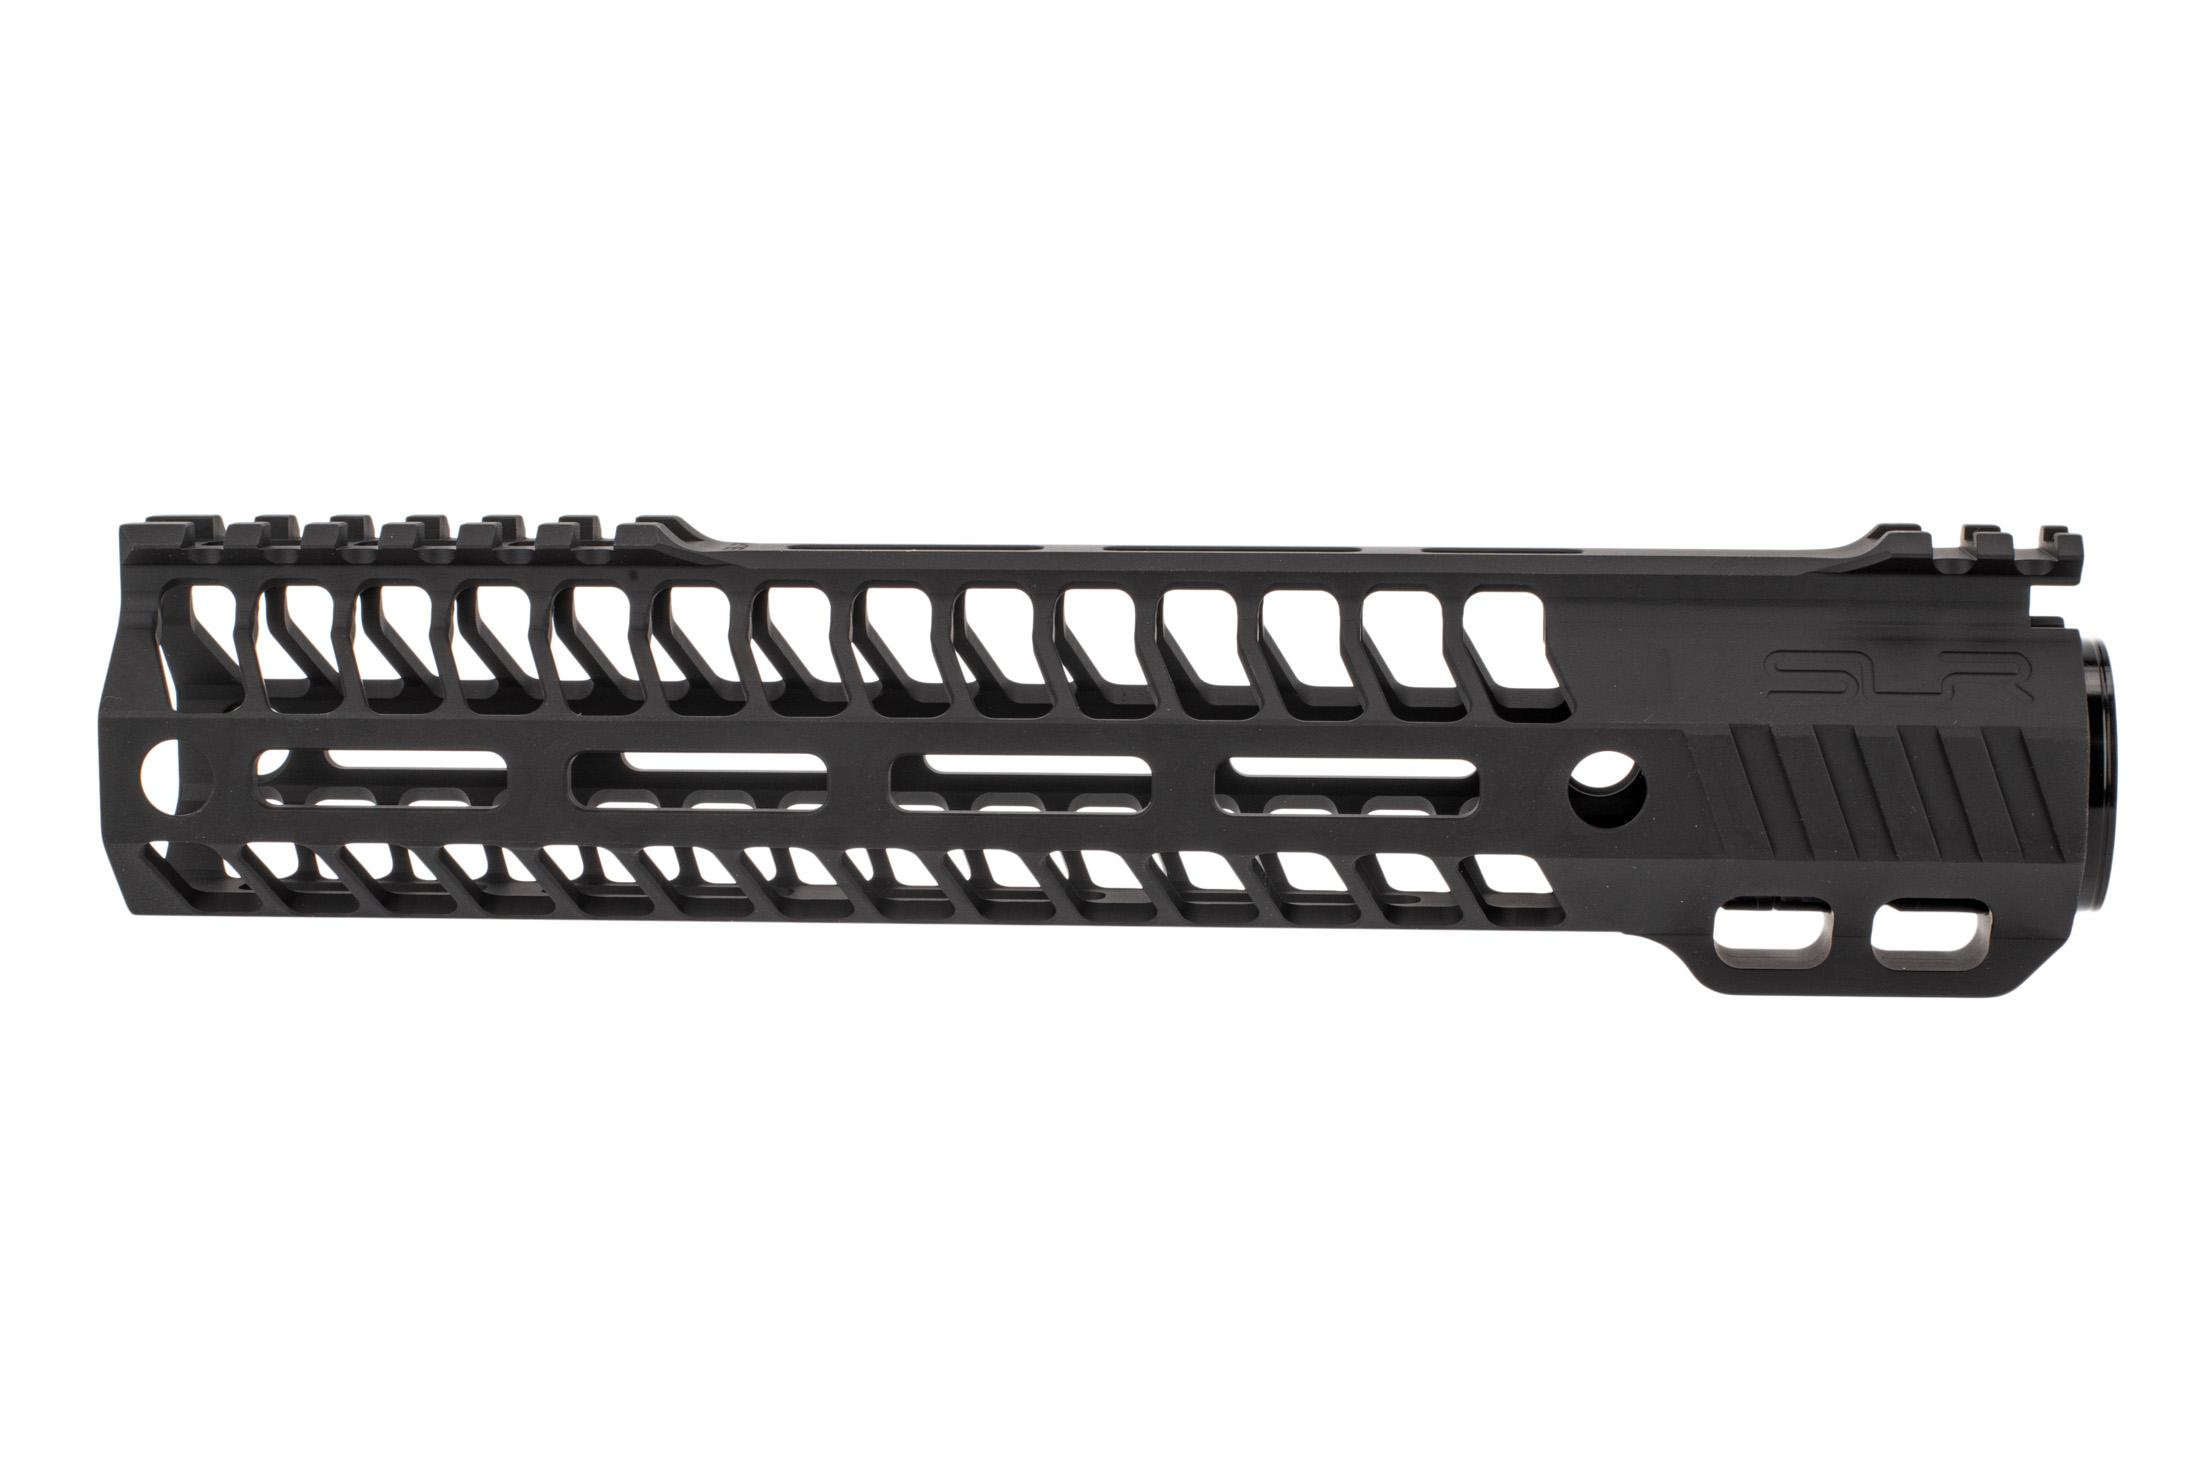 SLR Rifleworks M-LOK HELIX rail is 9.7 for AR15 with black anodized finish and full length top rail